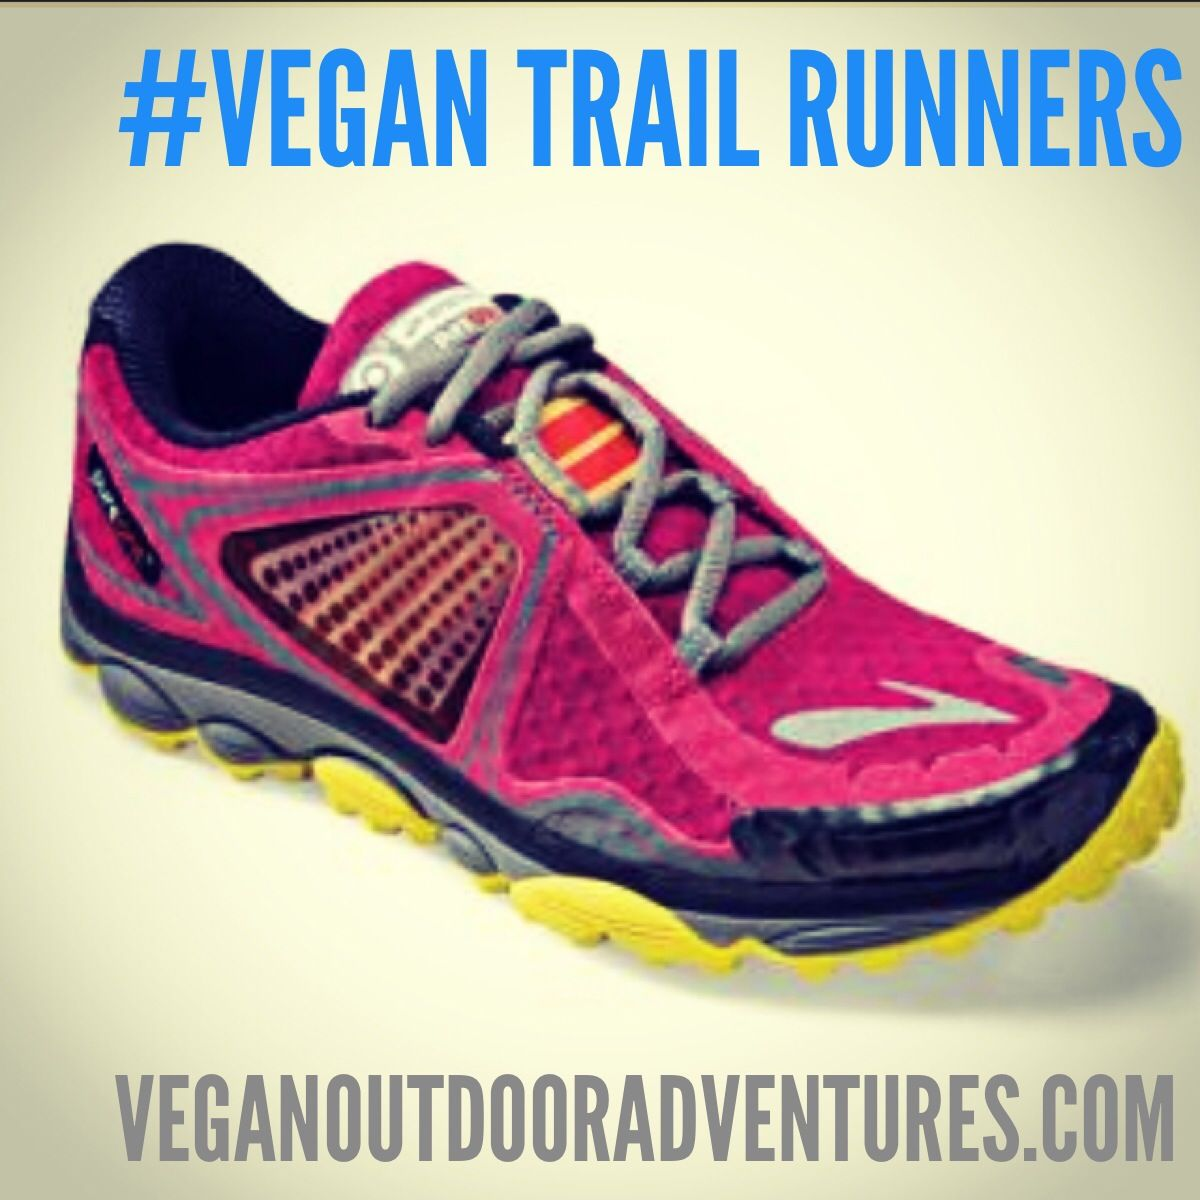 20+ completely synthetic trail running shoes. See the full list here: http://www.veganoutdooradventures.com/vegan-trail-runners/ #vegan #running #vegangear #veganoutdooradventures